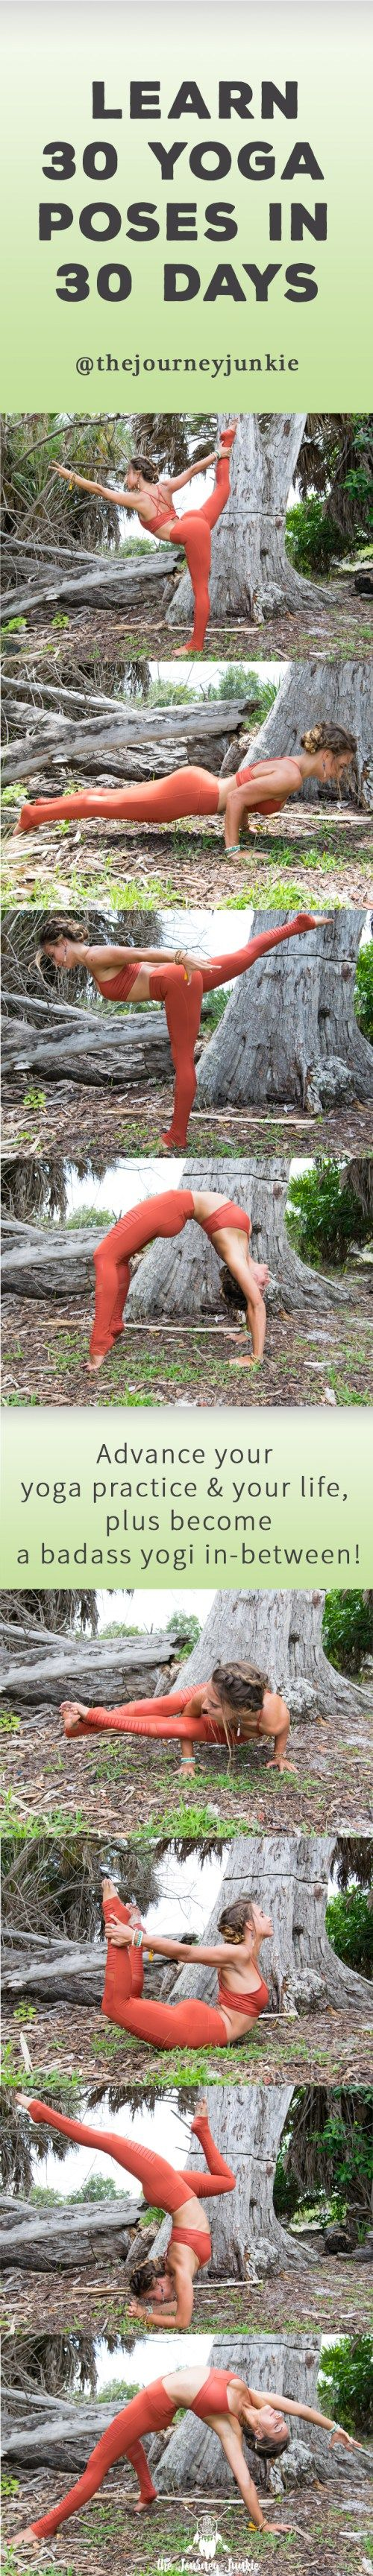 Join the 30 pose journey to advance your yoga practice and your life, plus…